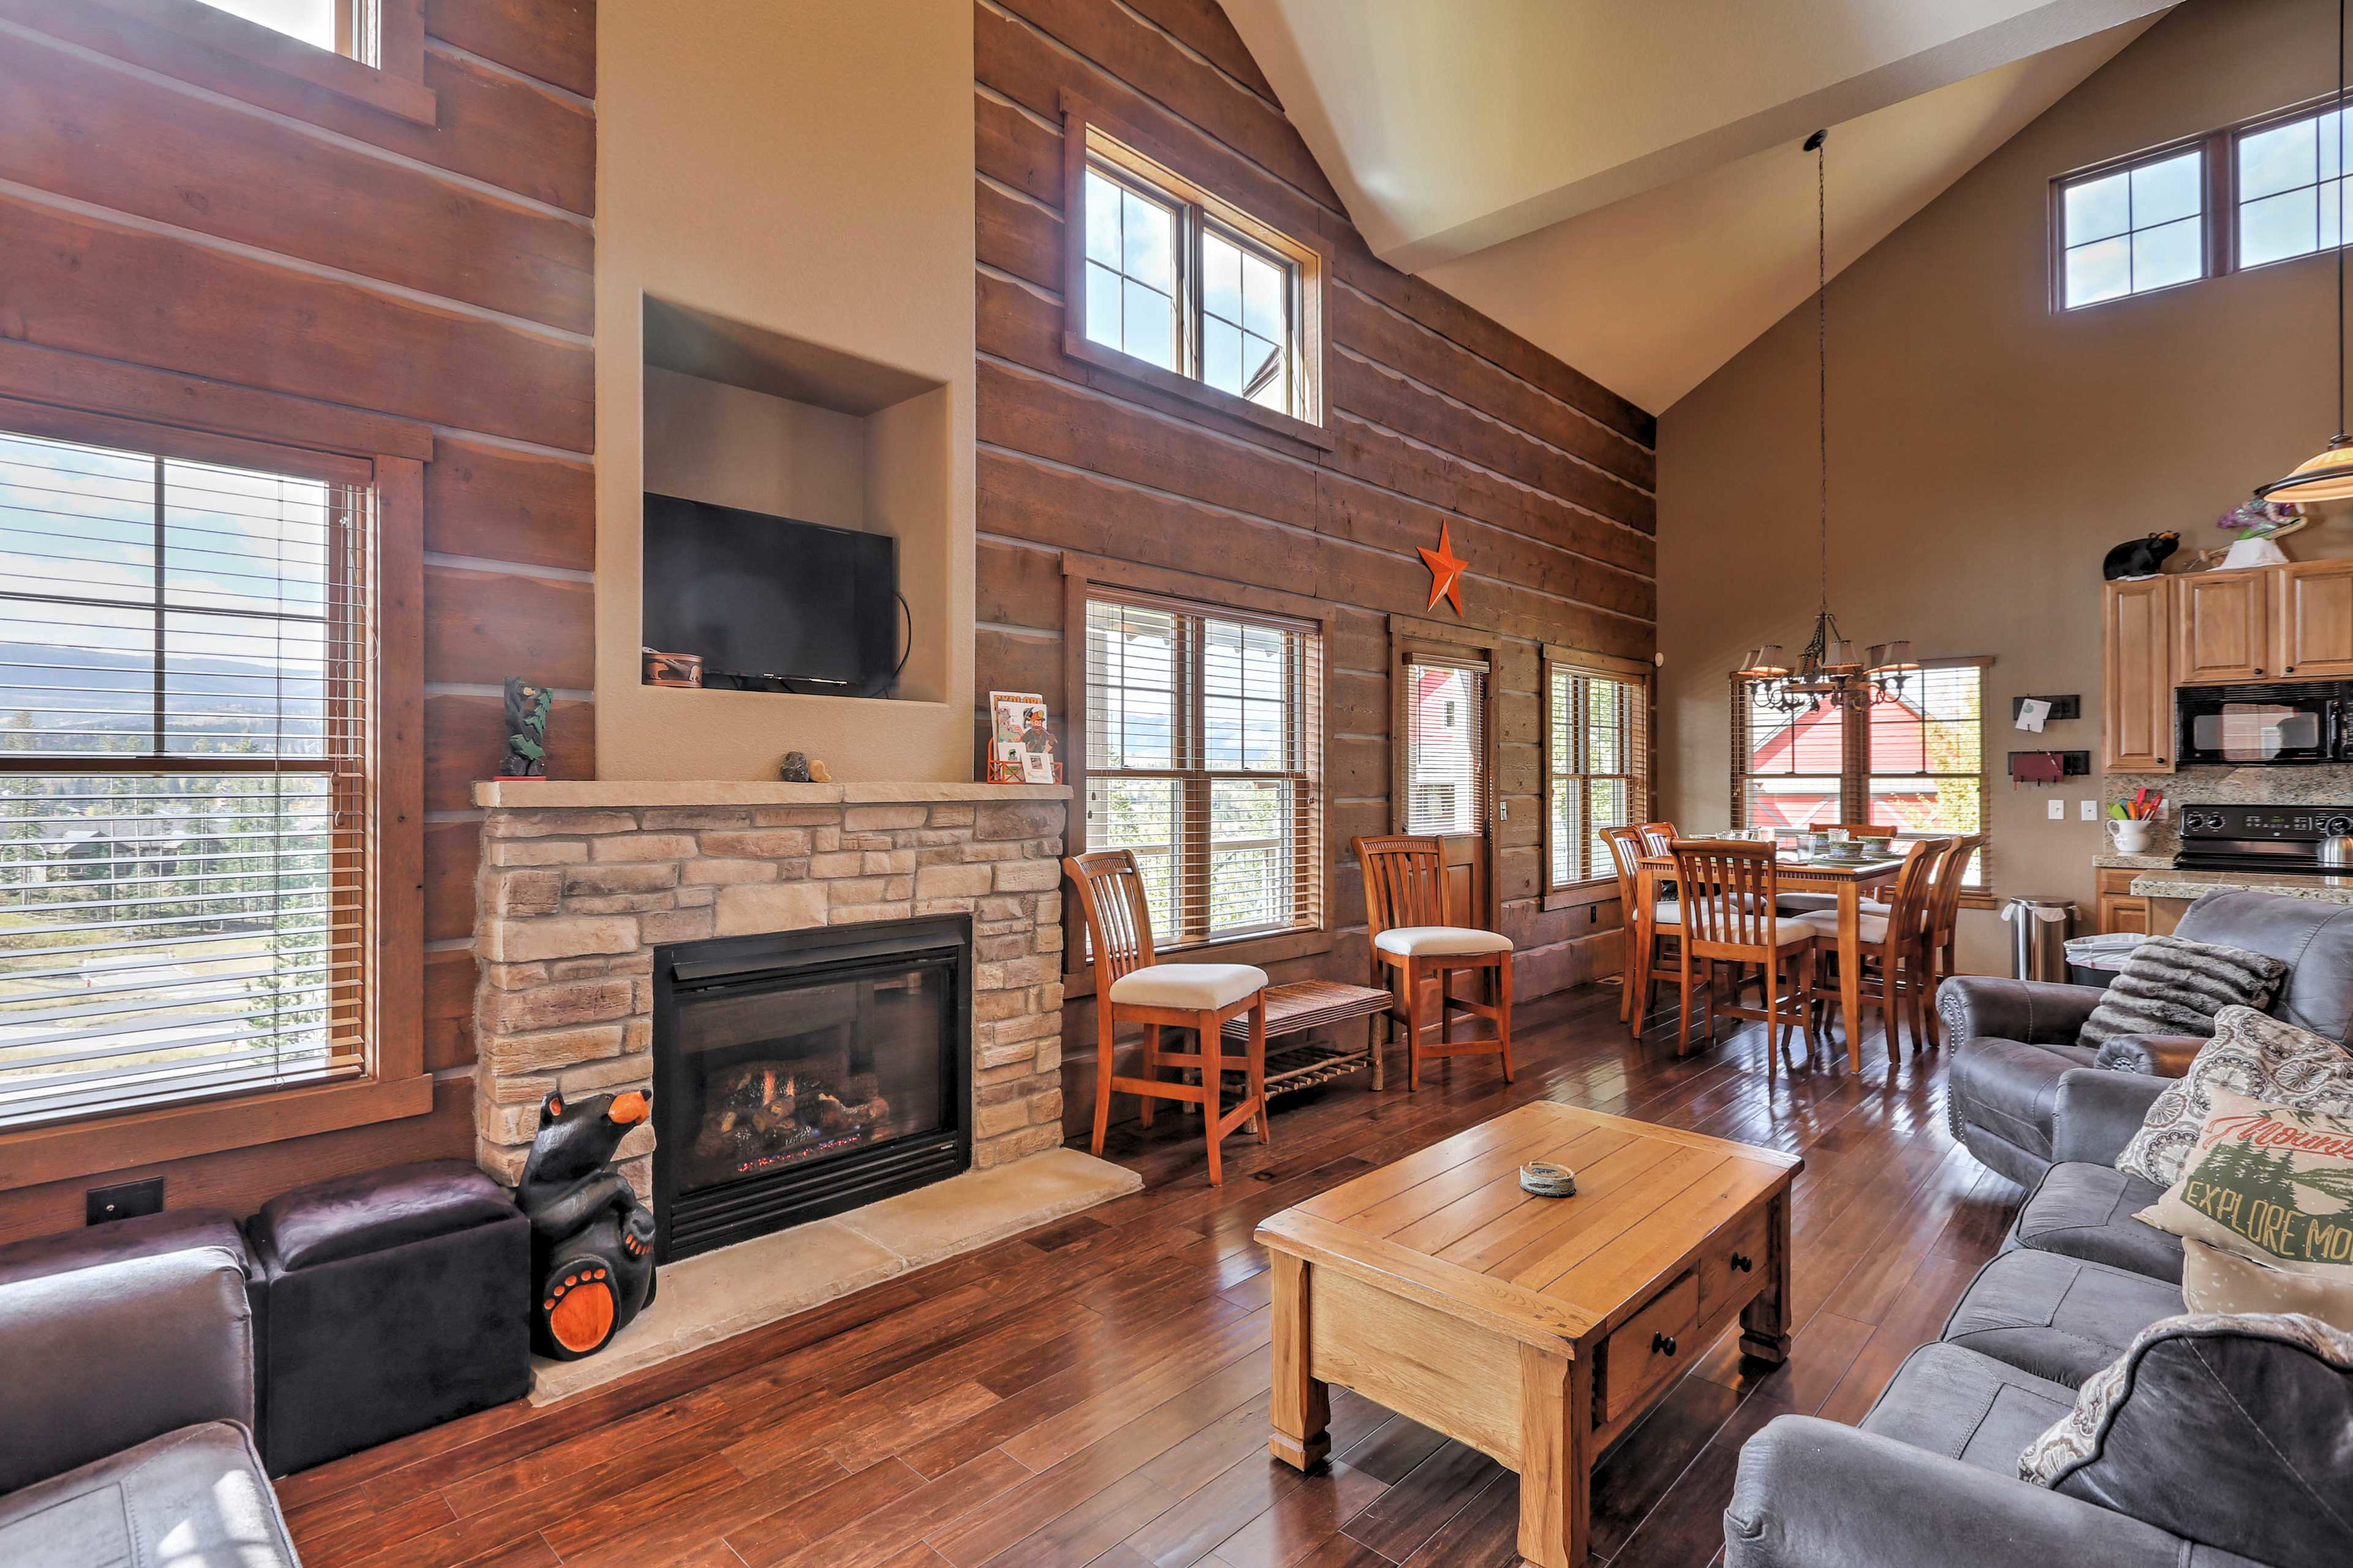 Enter the 3,237-square-foot home to find an open floor plan and high ceilings.